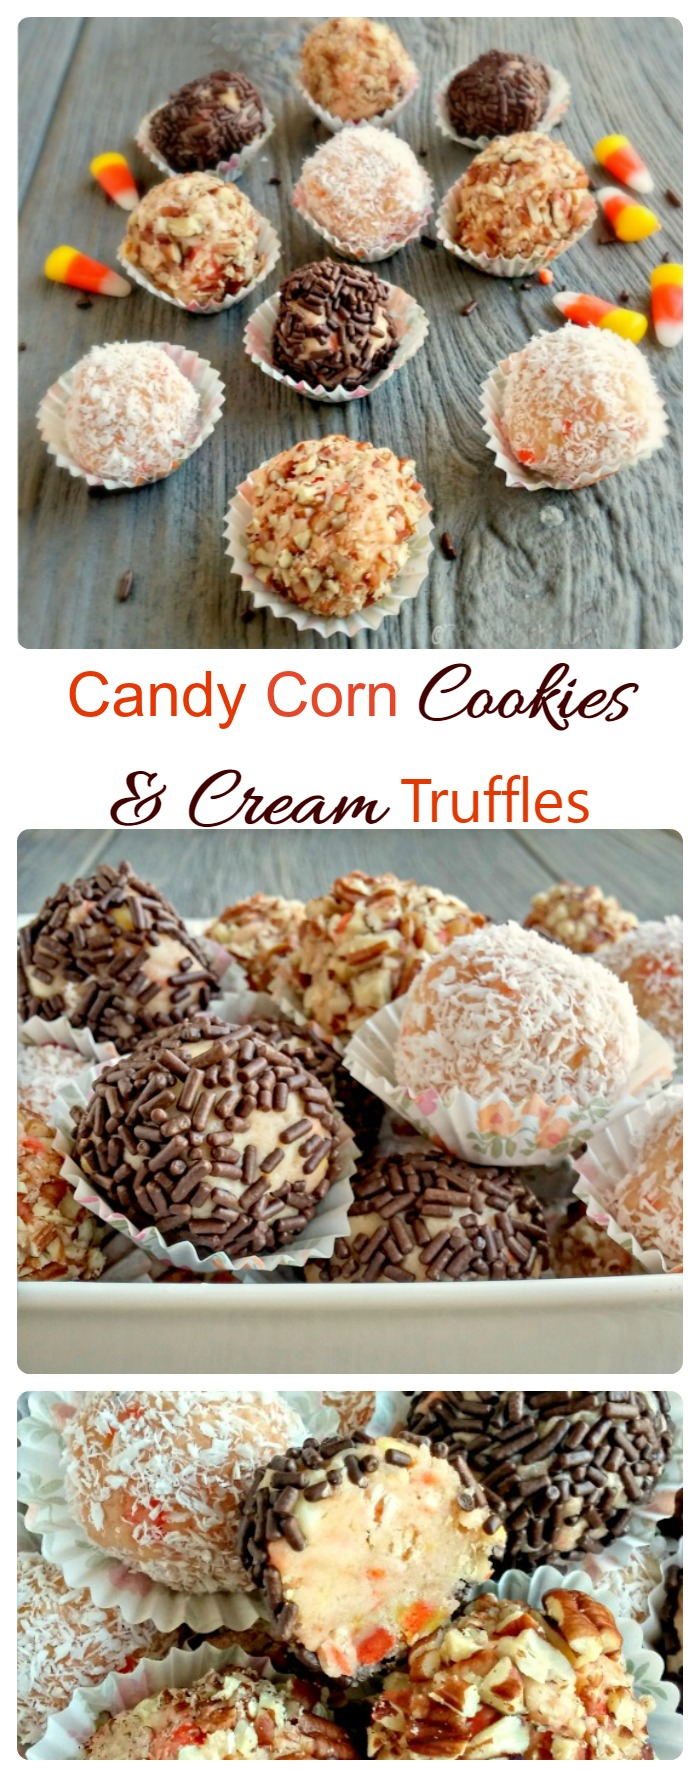 Candy Corn Cookies and Cream Truffles are the perfect way to celebrate the season.  Candy corn is not just for Trick or Treaters!